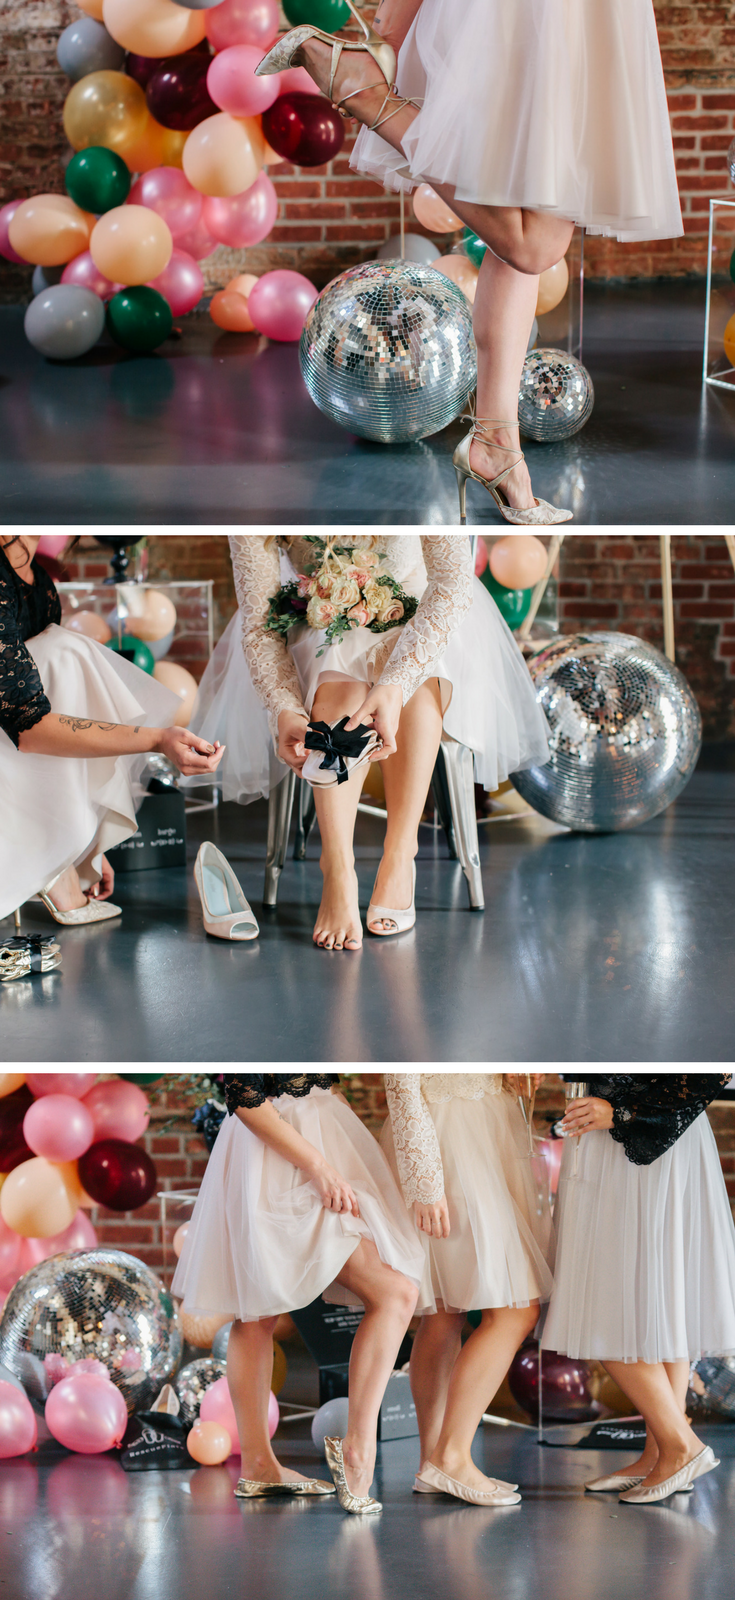 I just fell in love with this idea! I love to dance but I also like to look good and I find that heels are the only way to do that at a wedding or special event. What better way to go in looking great and then be able to DANCE ALL NIGHT with Rescue Flats?